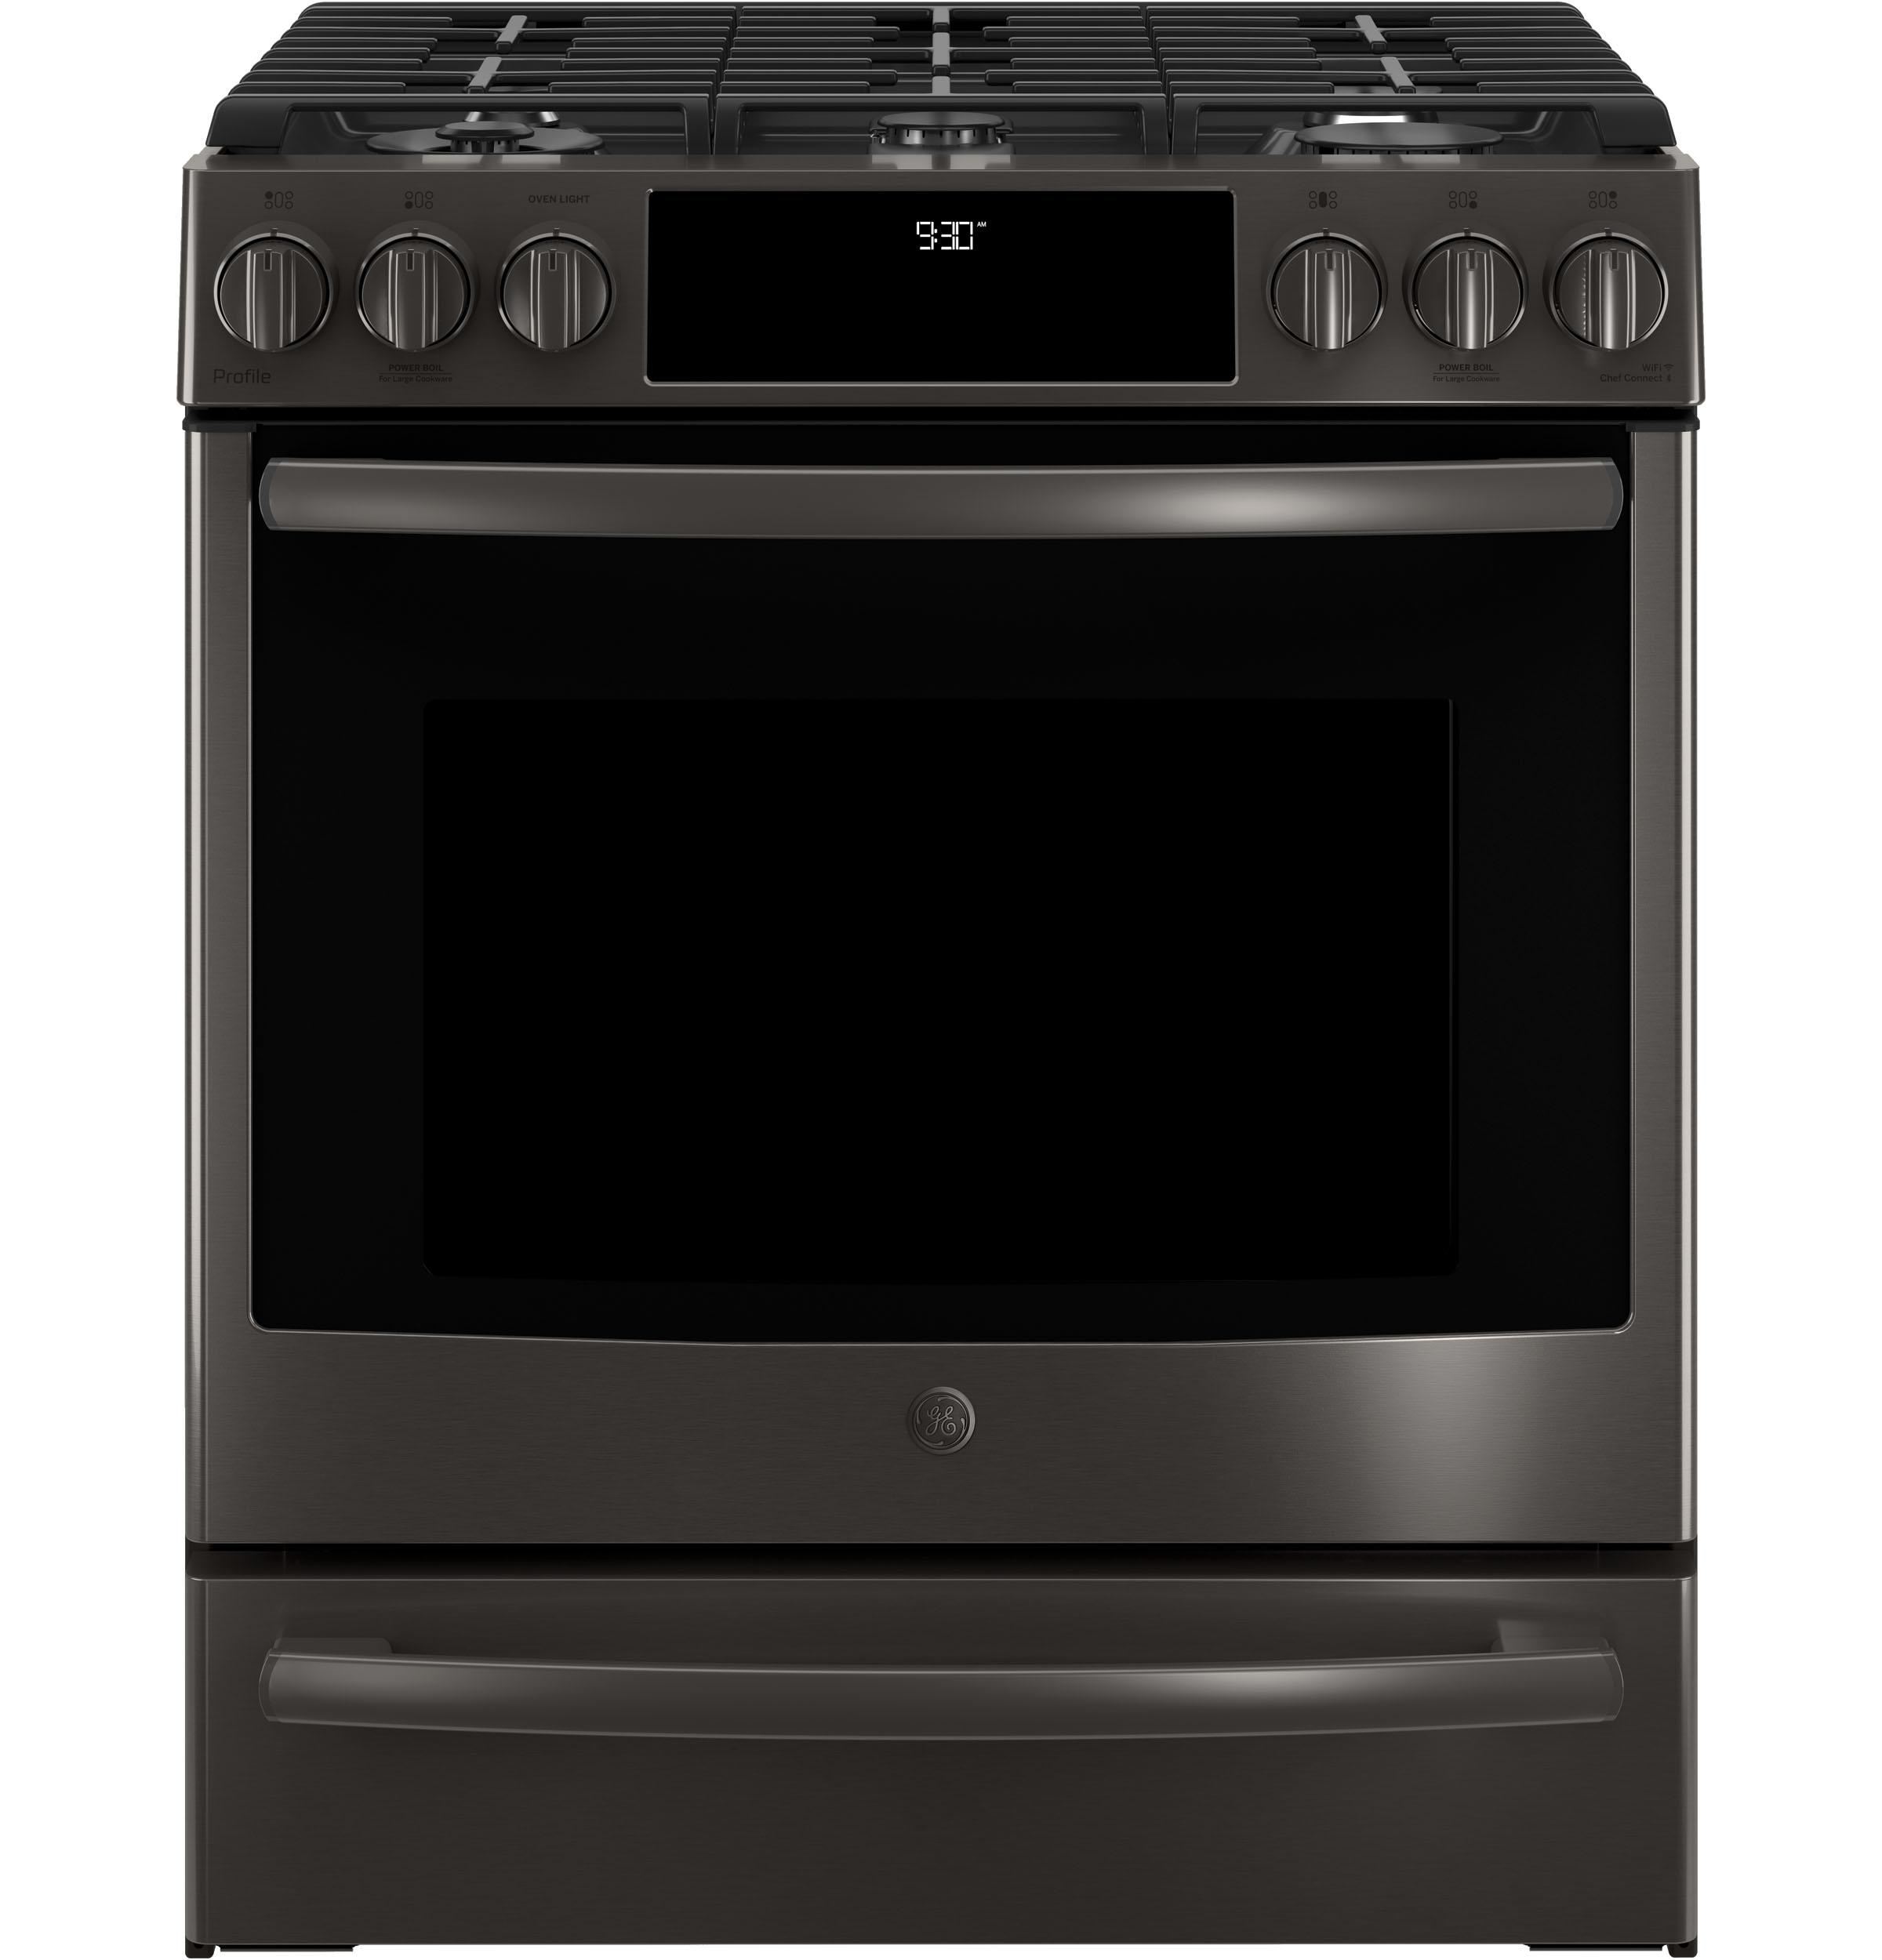 "GE Profile(TM) Series 30"" Slide-In Front Control Gas Range